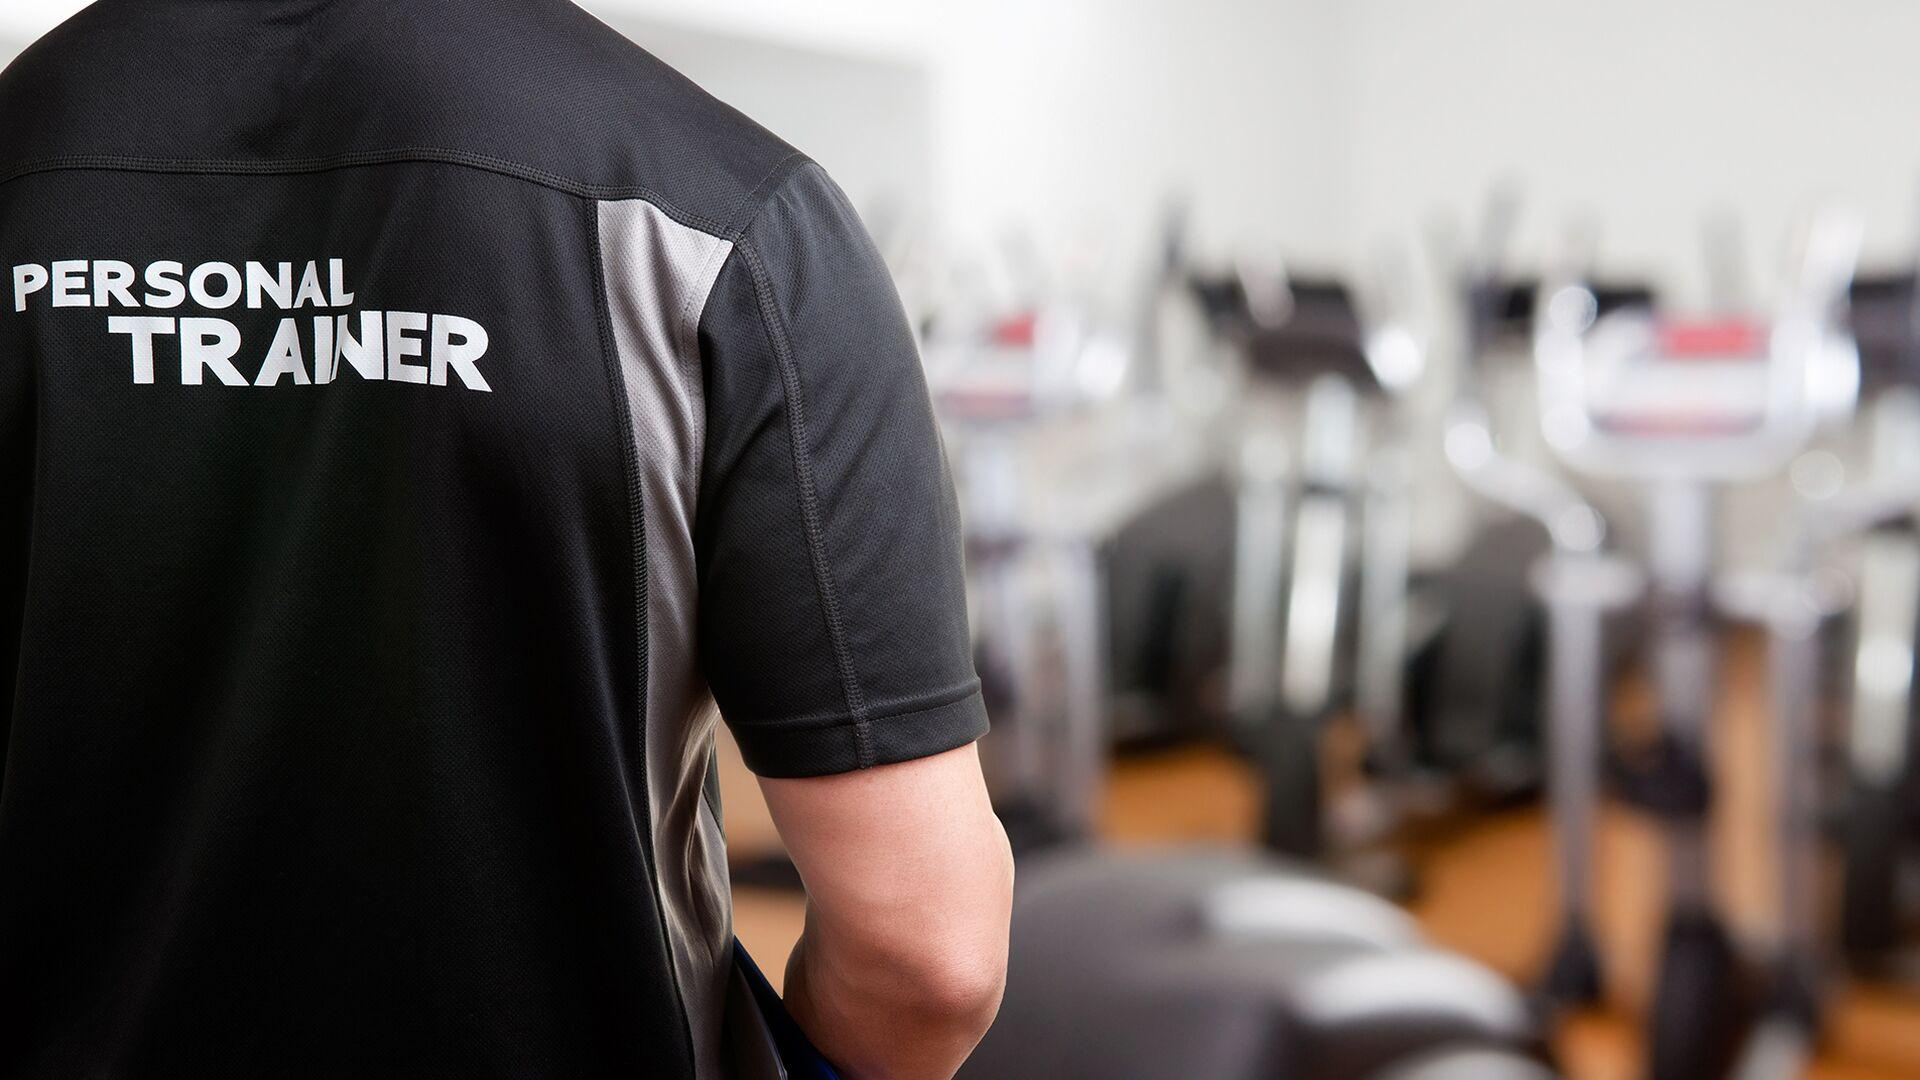 Personal training services available at Vila Vita Parc.